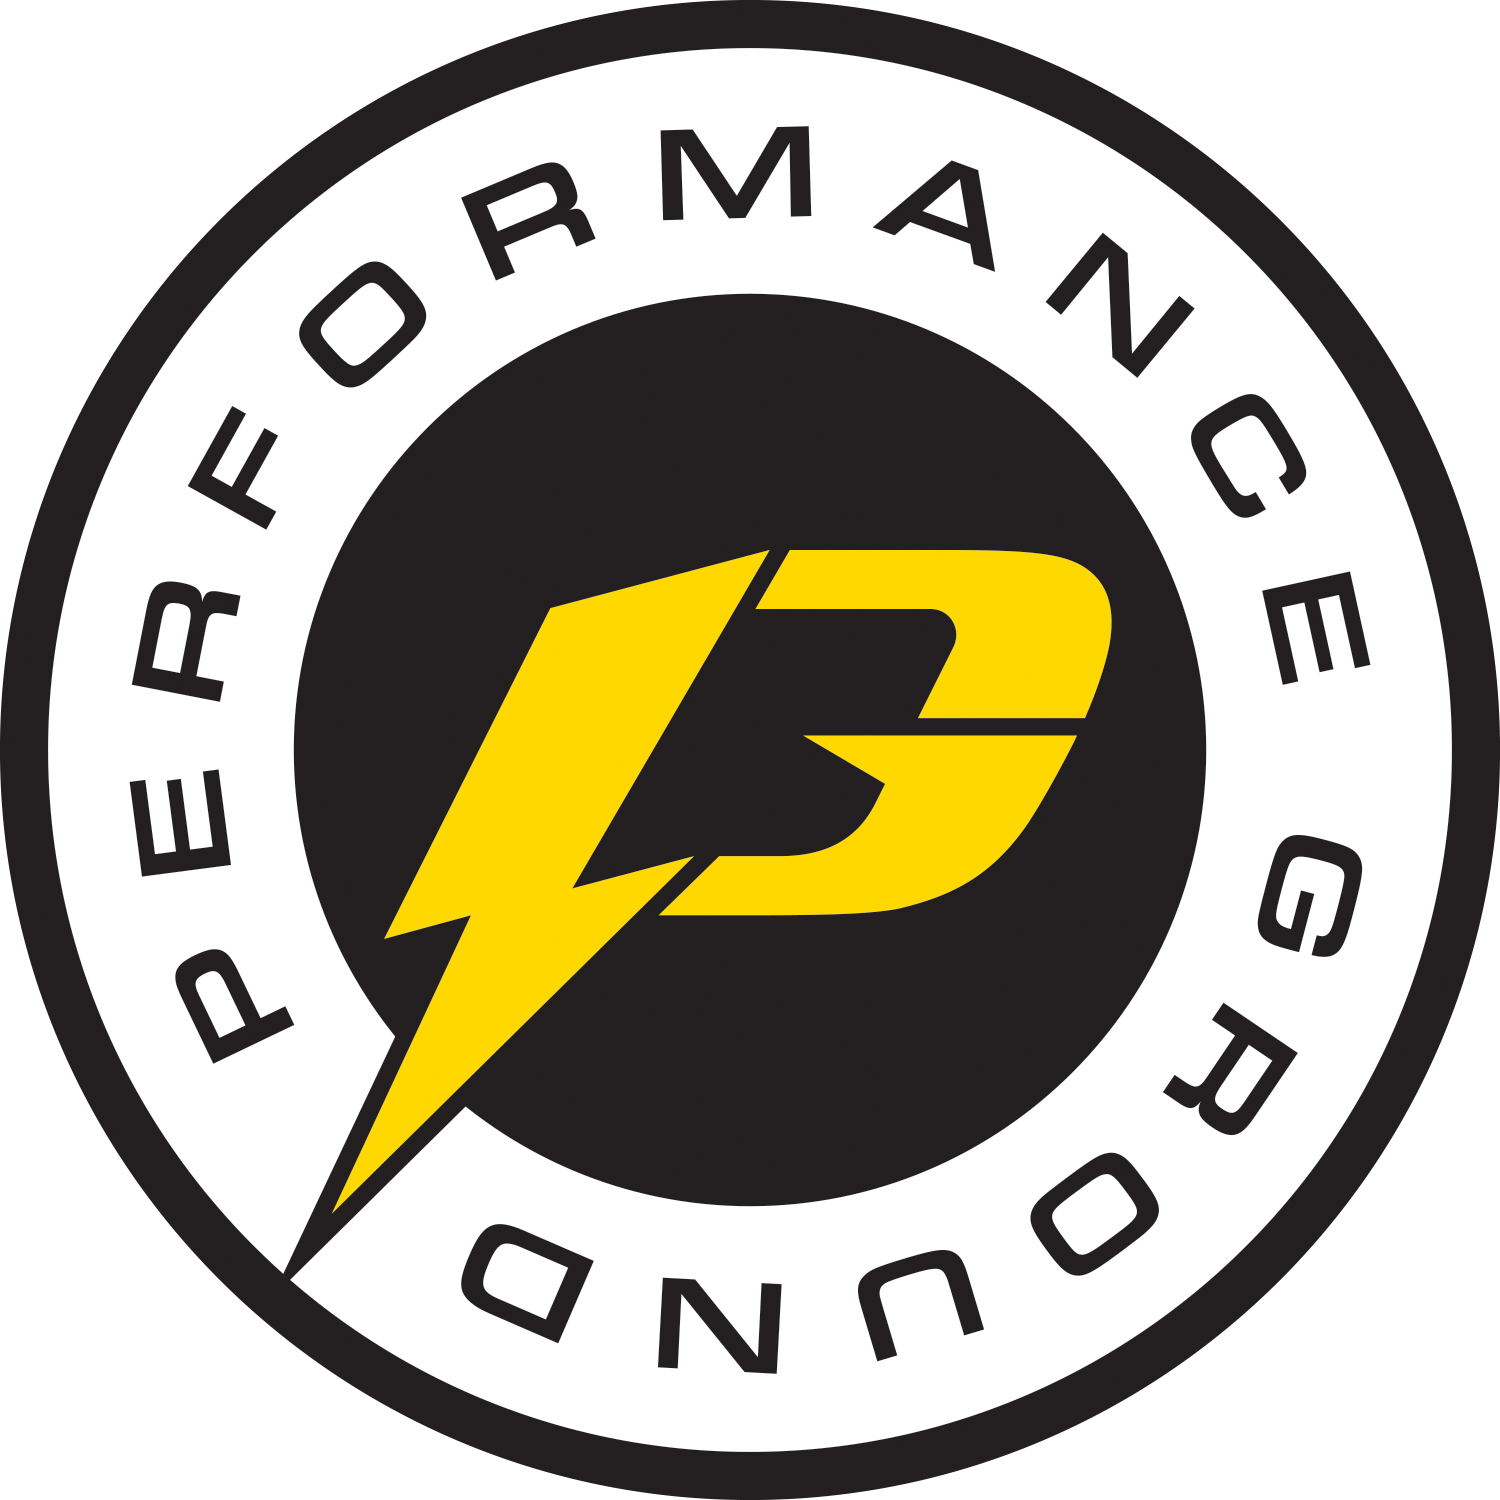 Performance Ground Logo -Evdoxia Argyropoulou